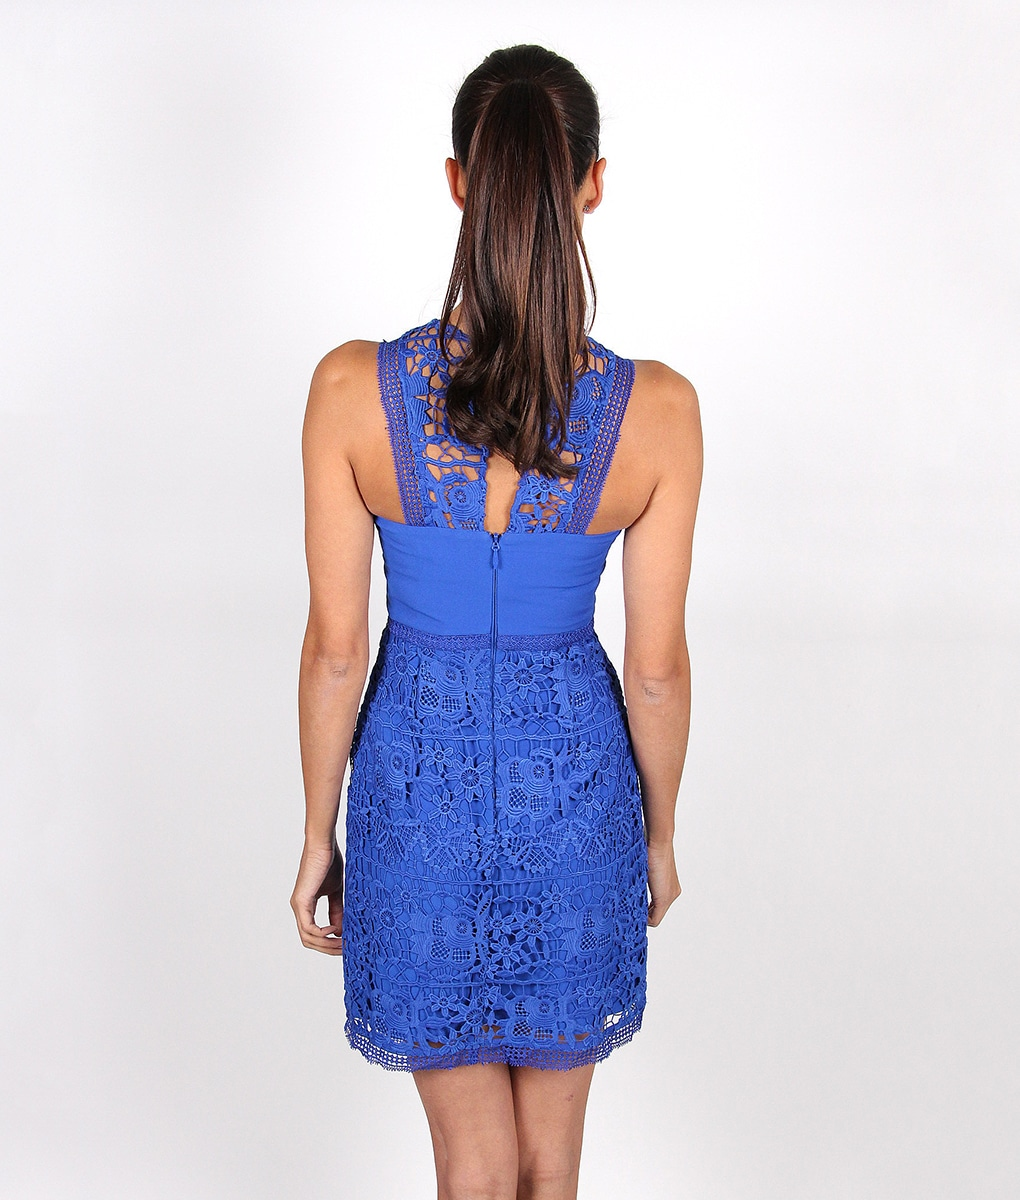 Alila-Sapphire-Blue-Lace-Dress-for-wedding-by-Lumier-by-Bariano-back